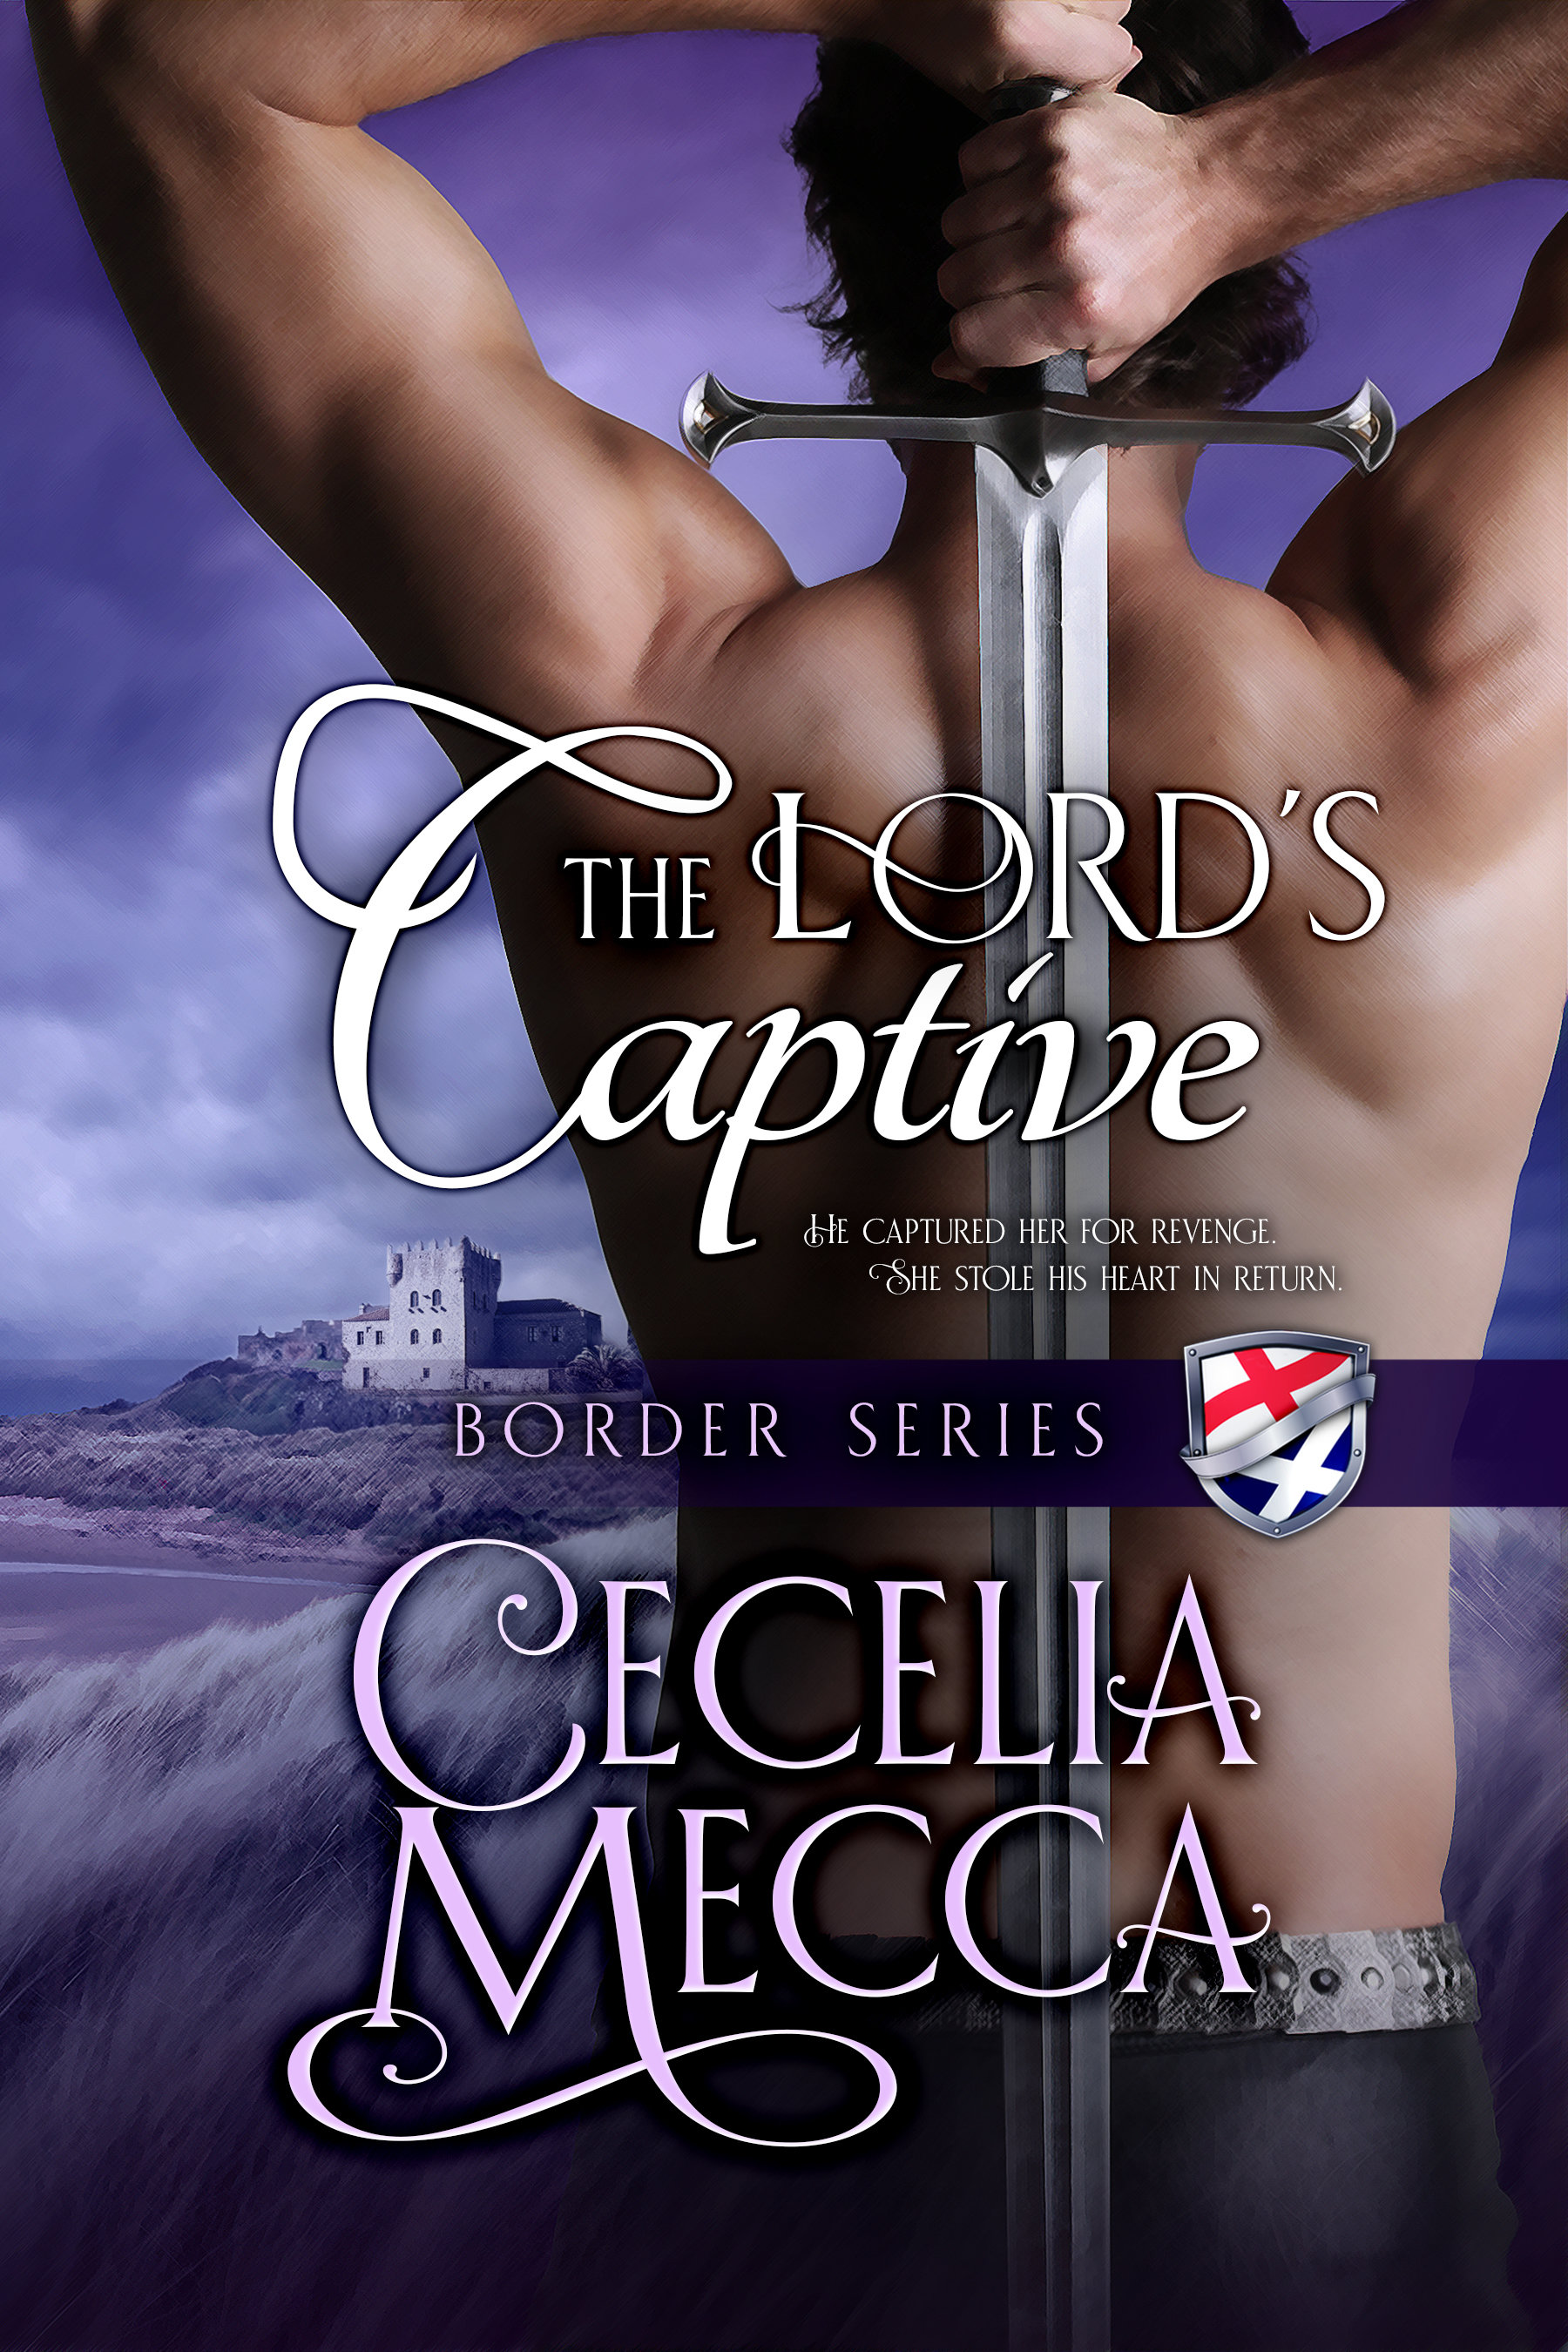 The Lord's Captive Border Series Book 2 00003